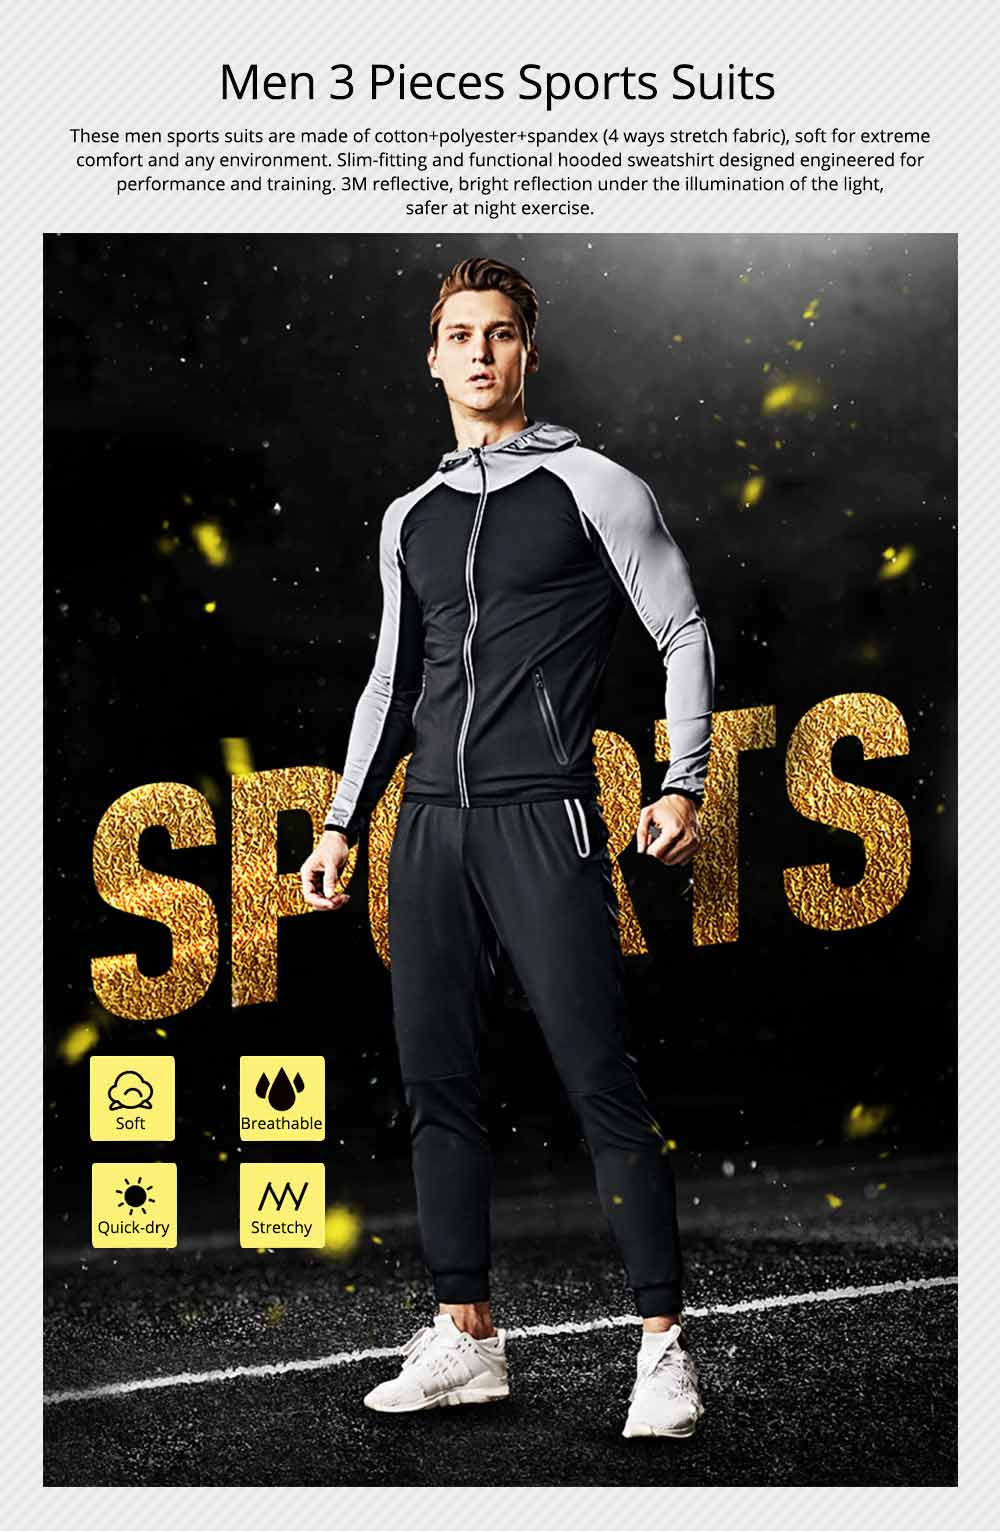 Men 3 Pieces Sports Suits Zip Up Hoodie Slim Fit Workout Hooded Sweatshirts with Zipper Pockets 0